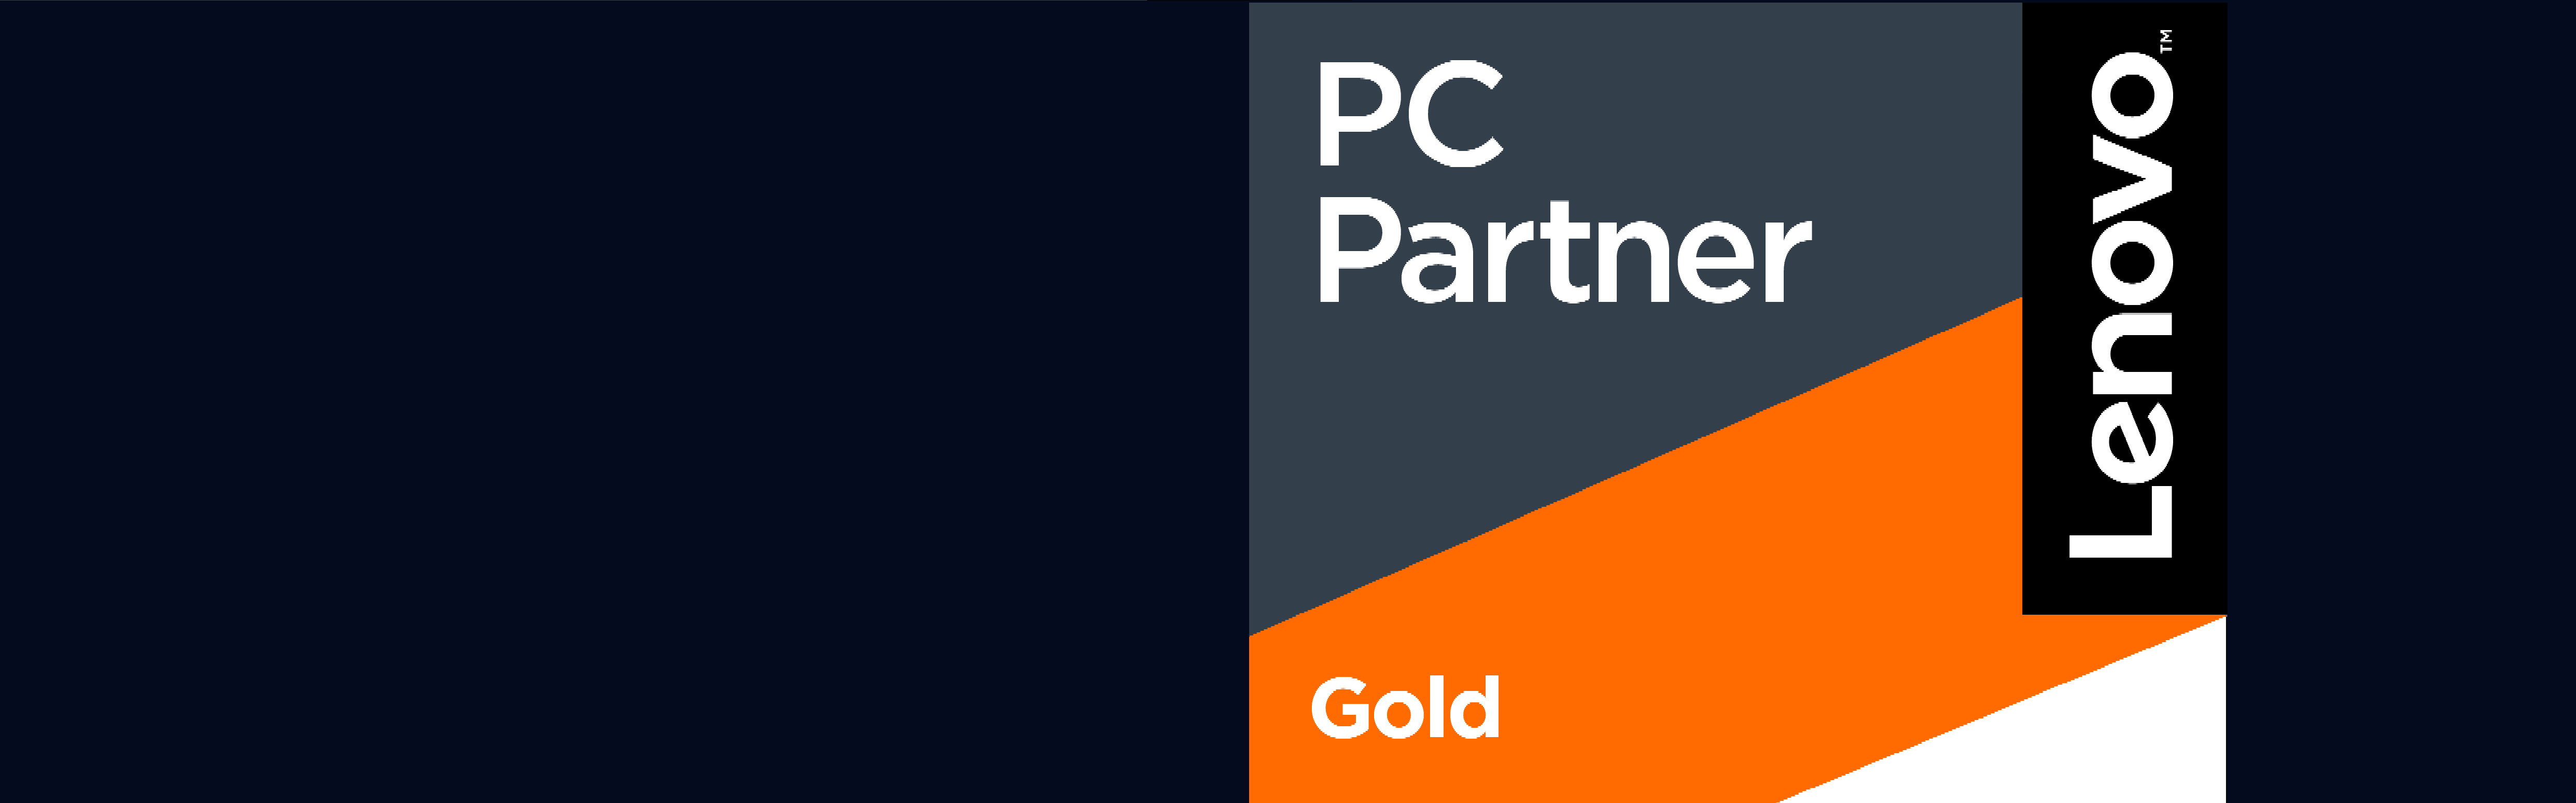 Lenovo PC Gold partner